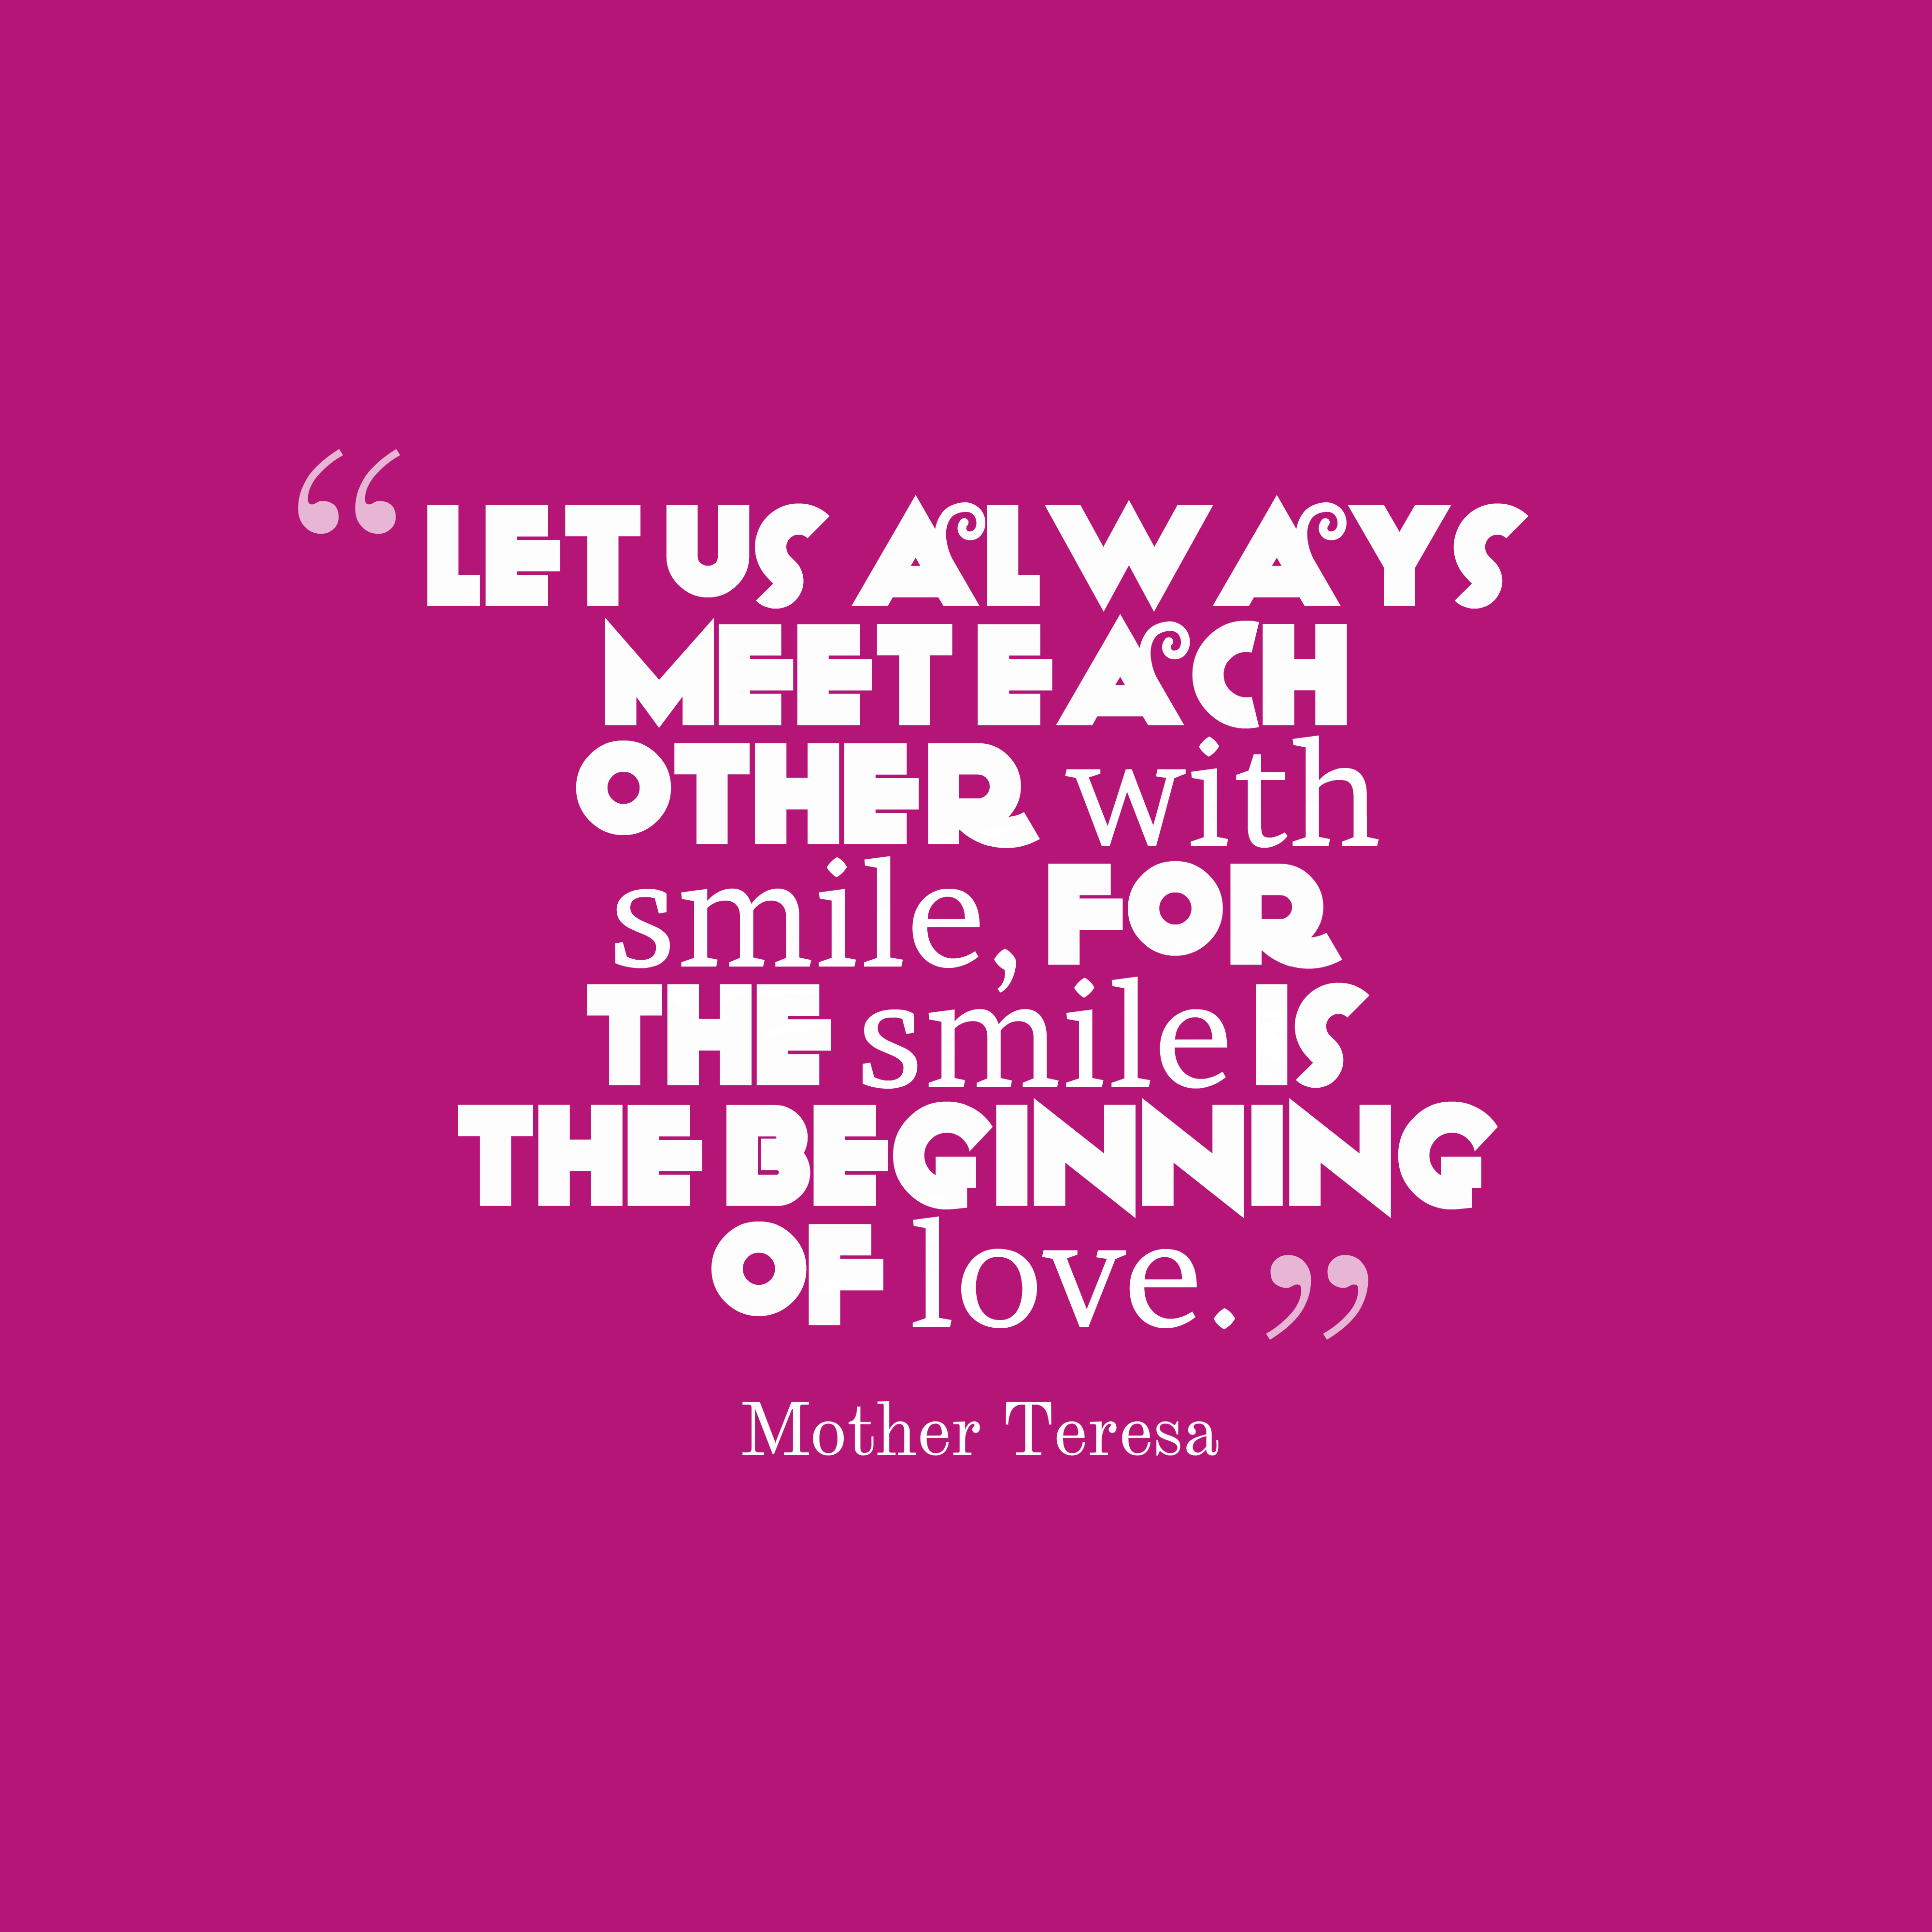 Let us always meet each quotes by Mother Teresa 68